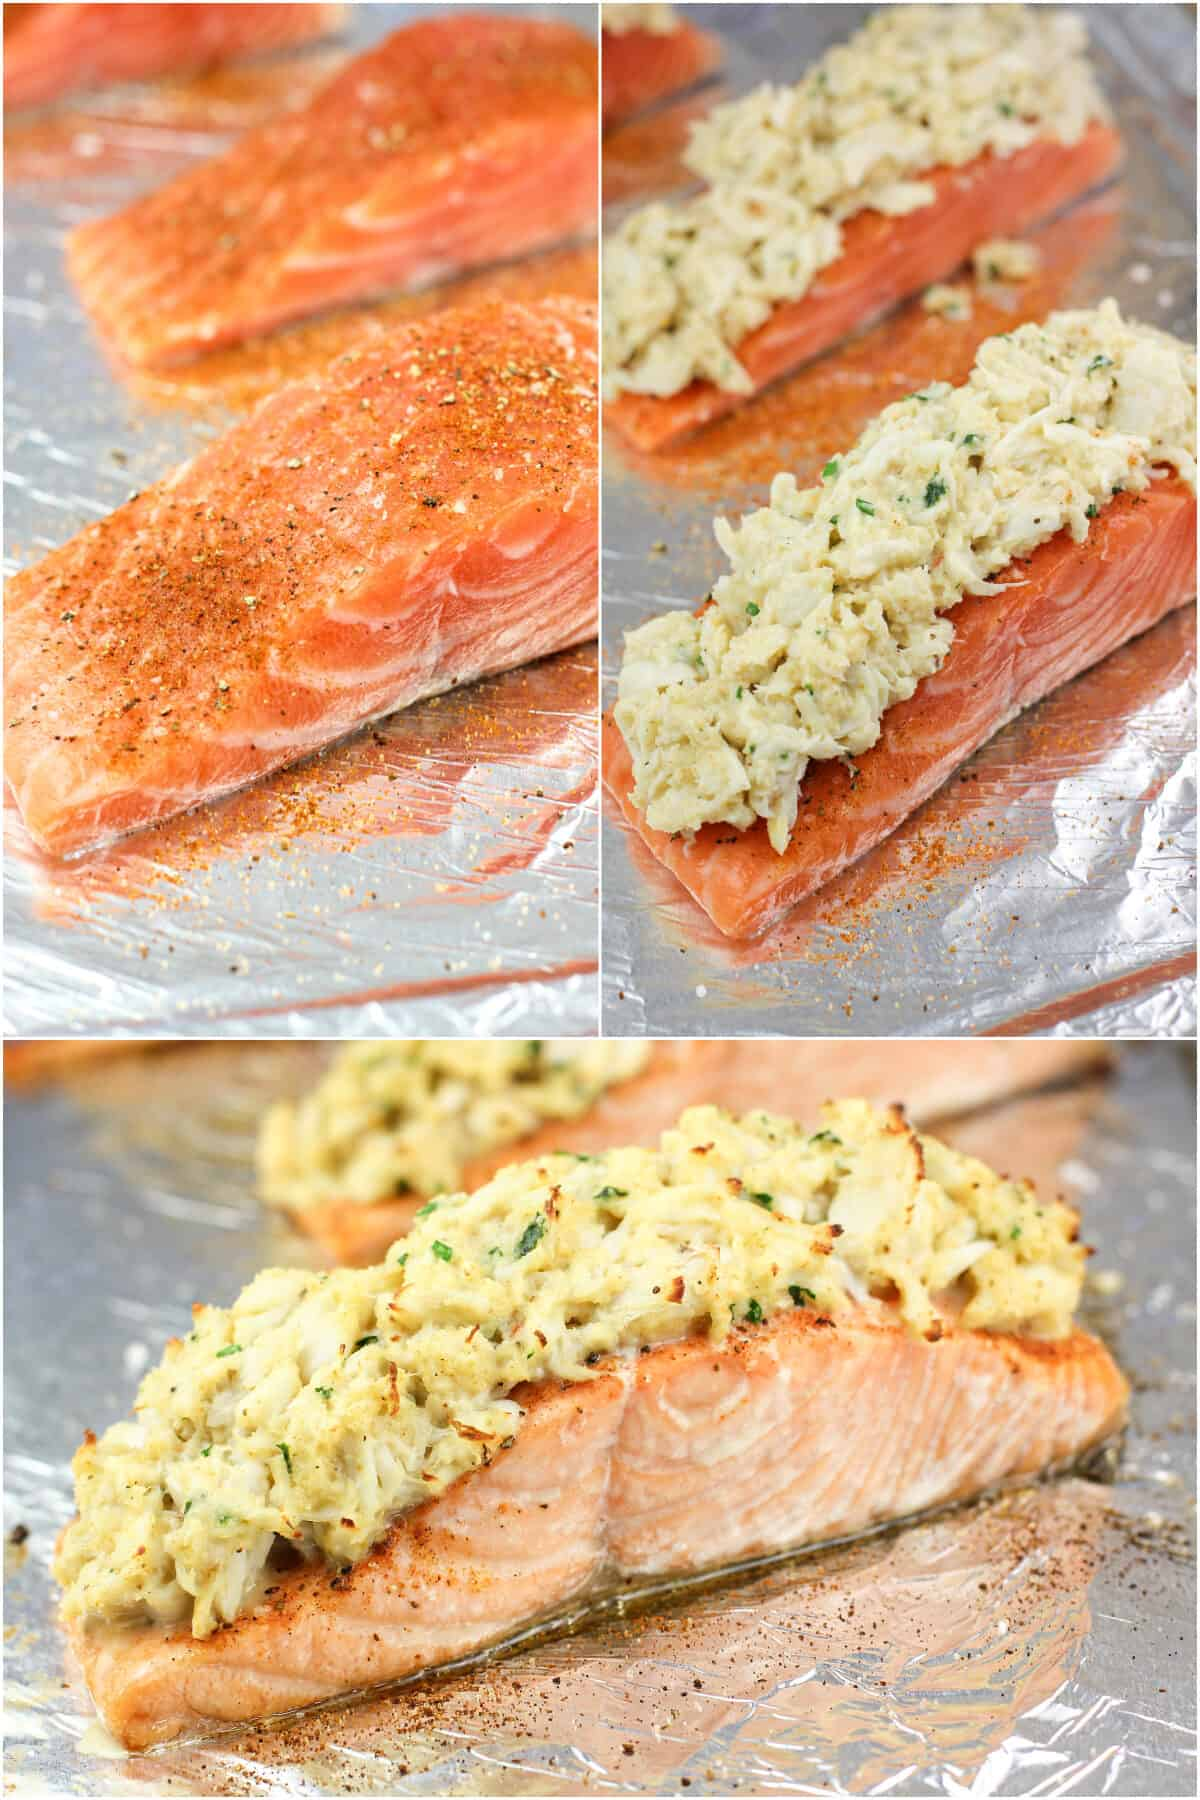 collage of 3 photos: uncooked seasoned salmon on bake sheet; salmon topped with stuffing; cooked stuffed salmon